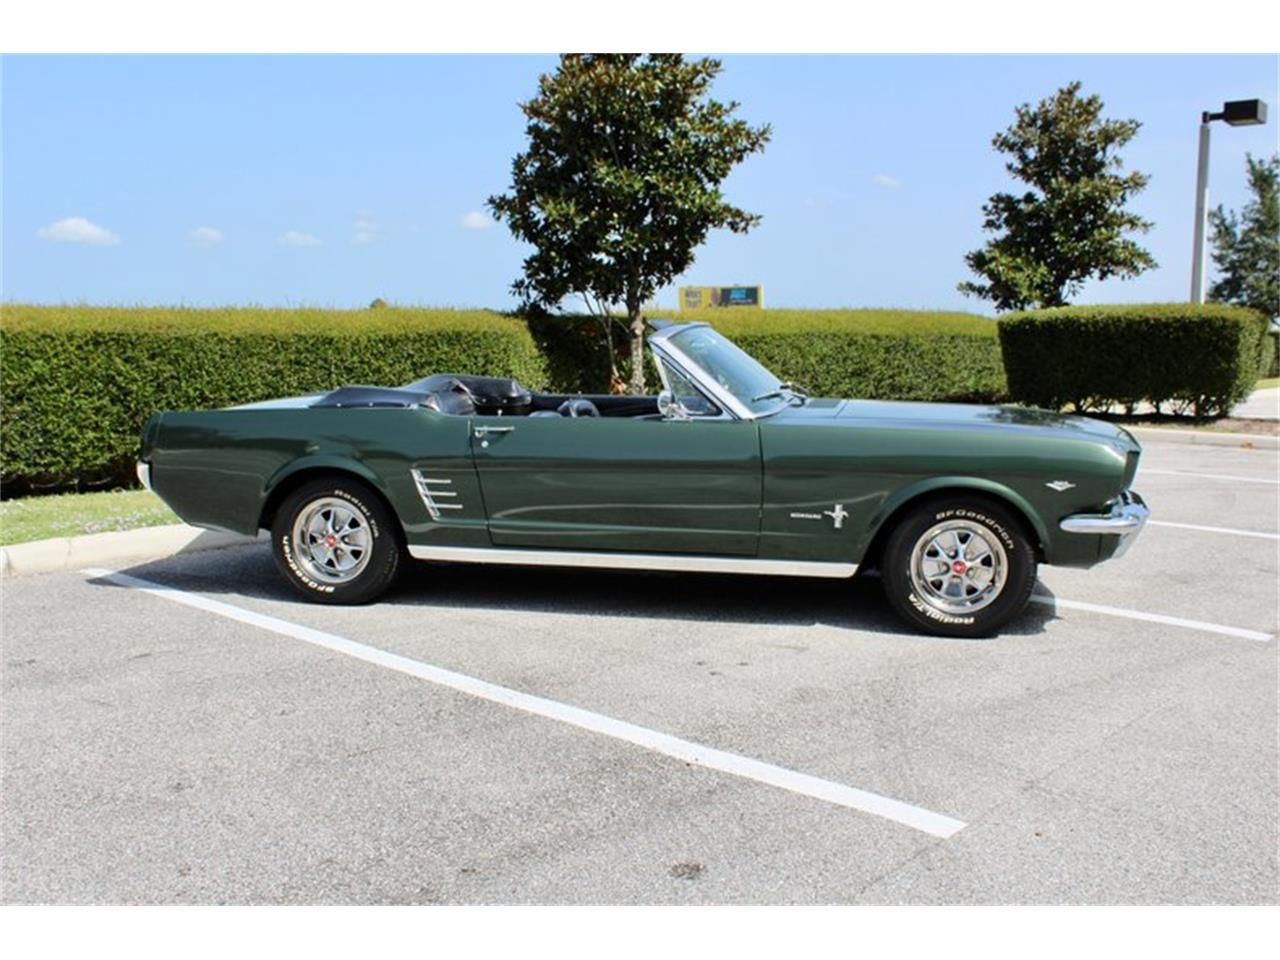 Ford Mustang V8 289 code c 1966 prix tout compris 1966